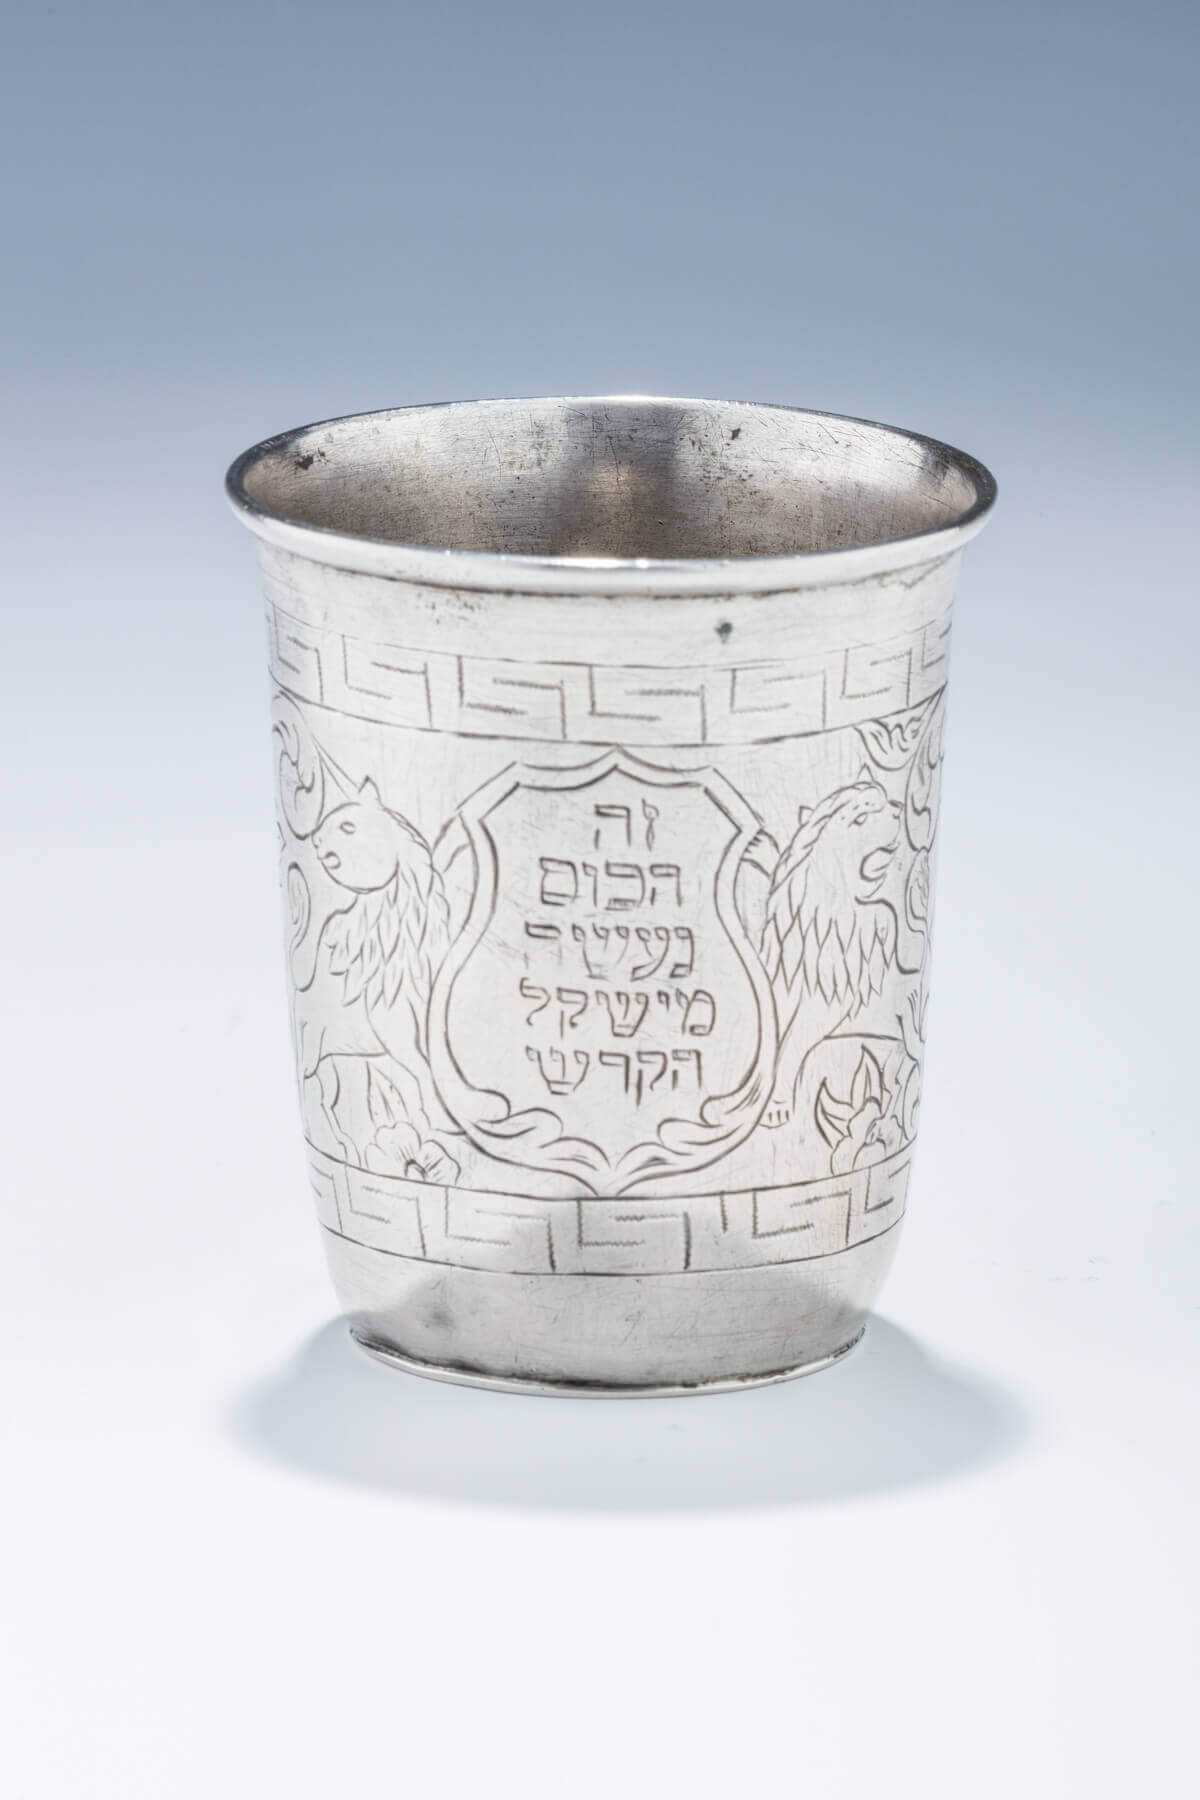 055. AN EARLY KIDDUSH CUP MADE OF SHMIRAH SILVER